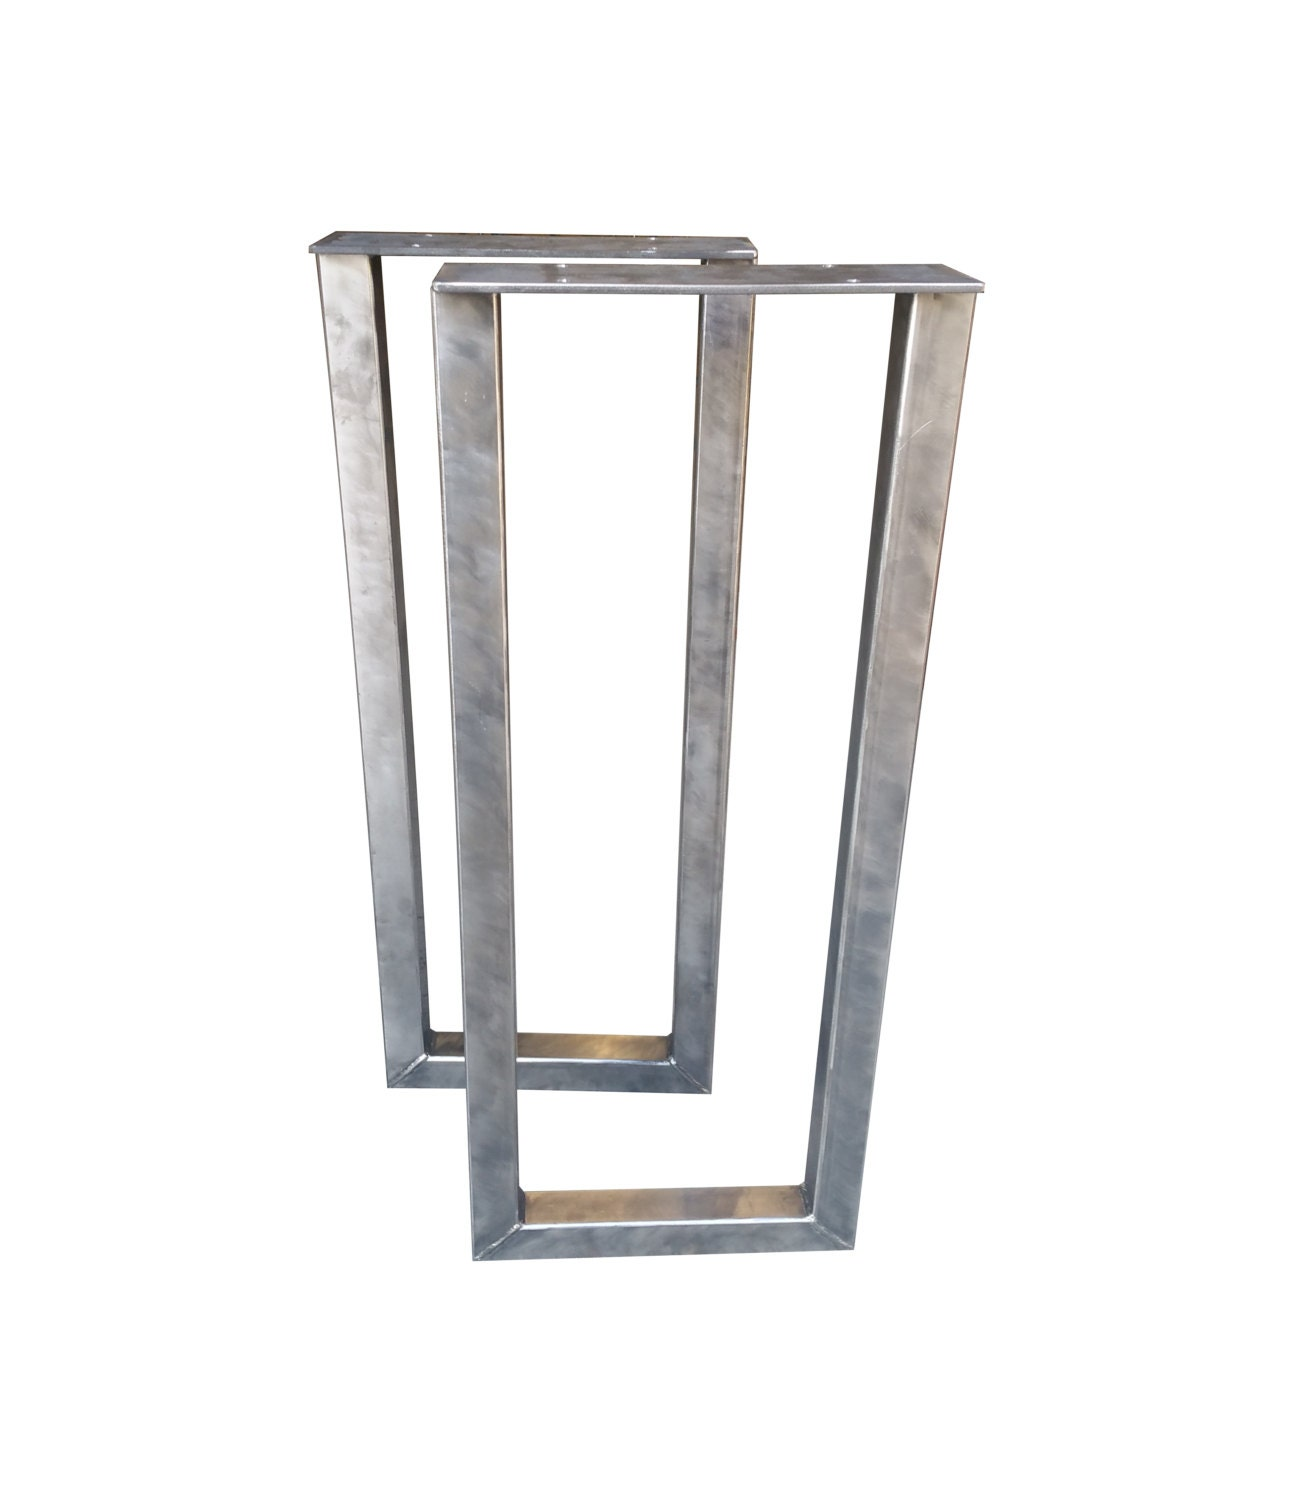 Metal rectangle table legs 2x2 square tubing console table for Square iron table legs